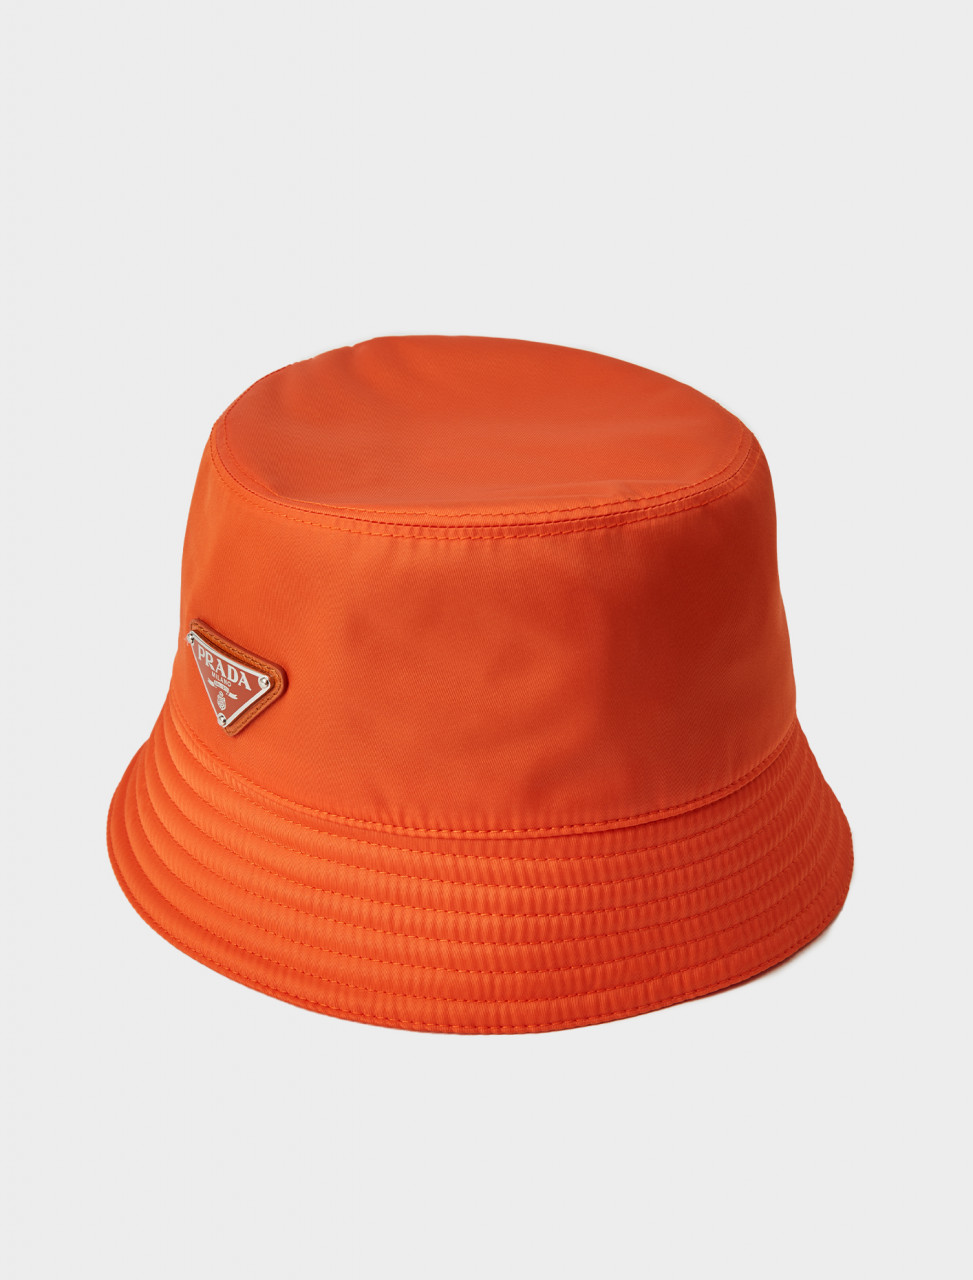 Prada Nylon Rain Hat in Orange